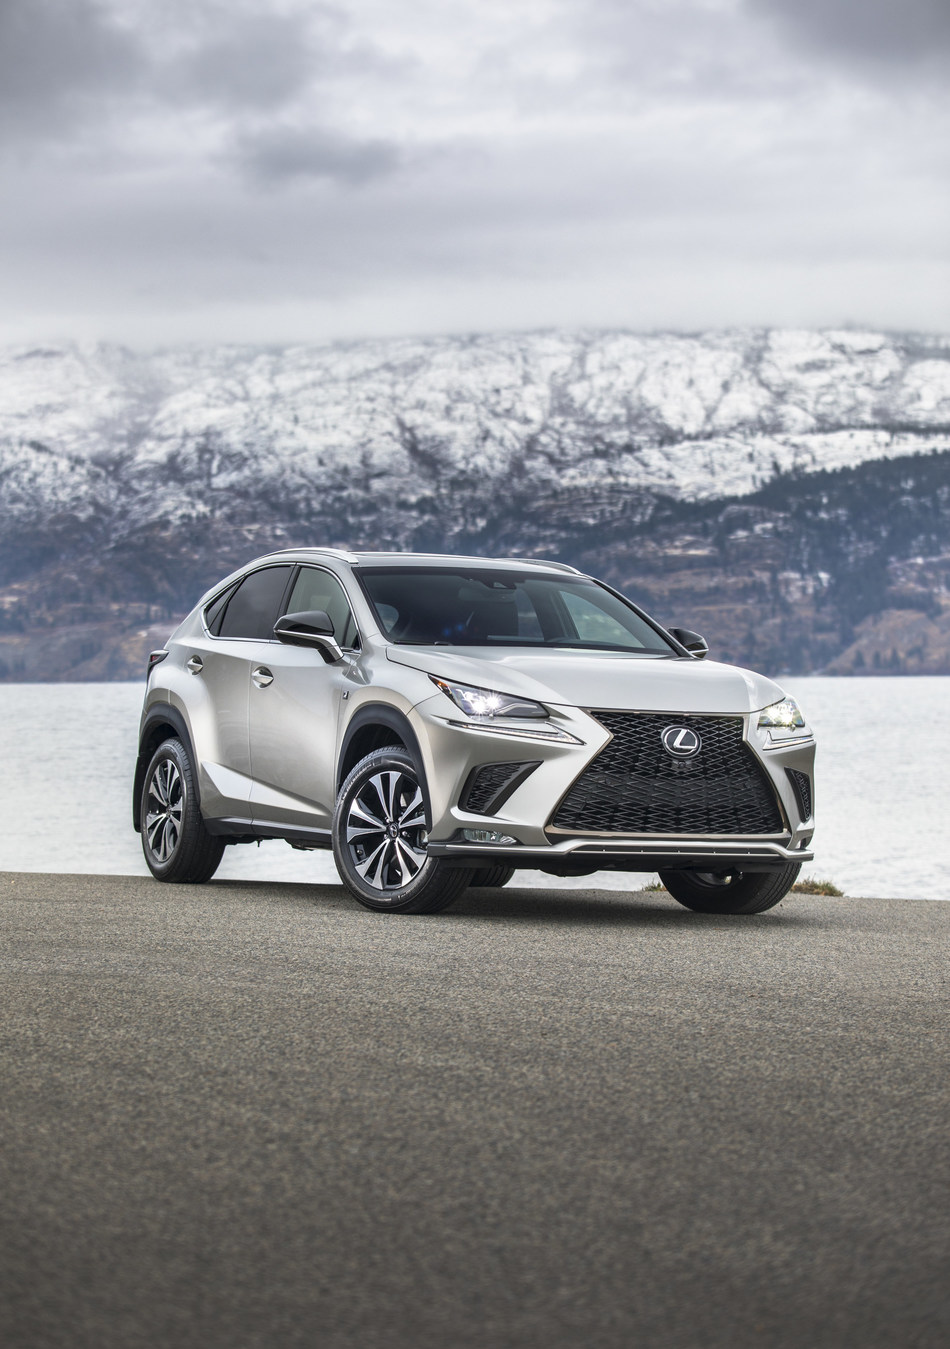 Toyota Motor Manufacturing Canada (TMMC) announced today that it will begin producing the top-selling Lexus NX and Lexus NX Hybrid compact luxury SUVs at its Cambridge, Ontario facility starting in early 2022. (CNW Group/Toyota Canada Inc.)